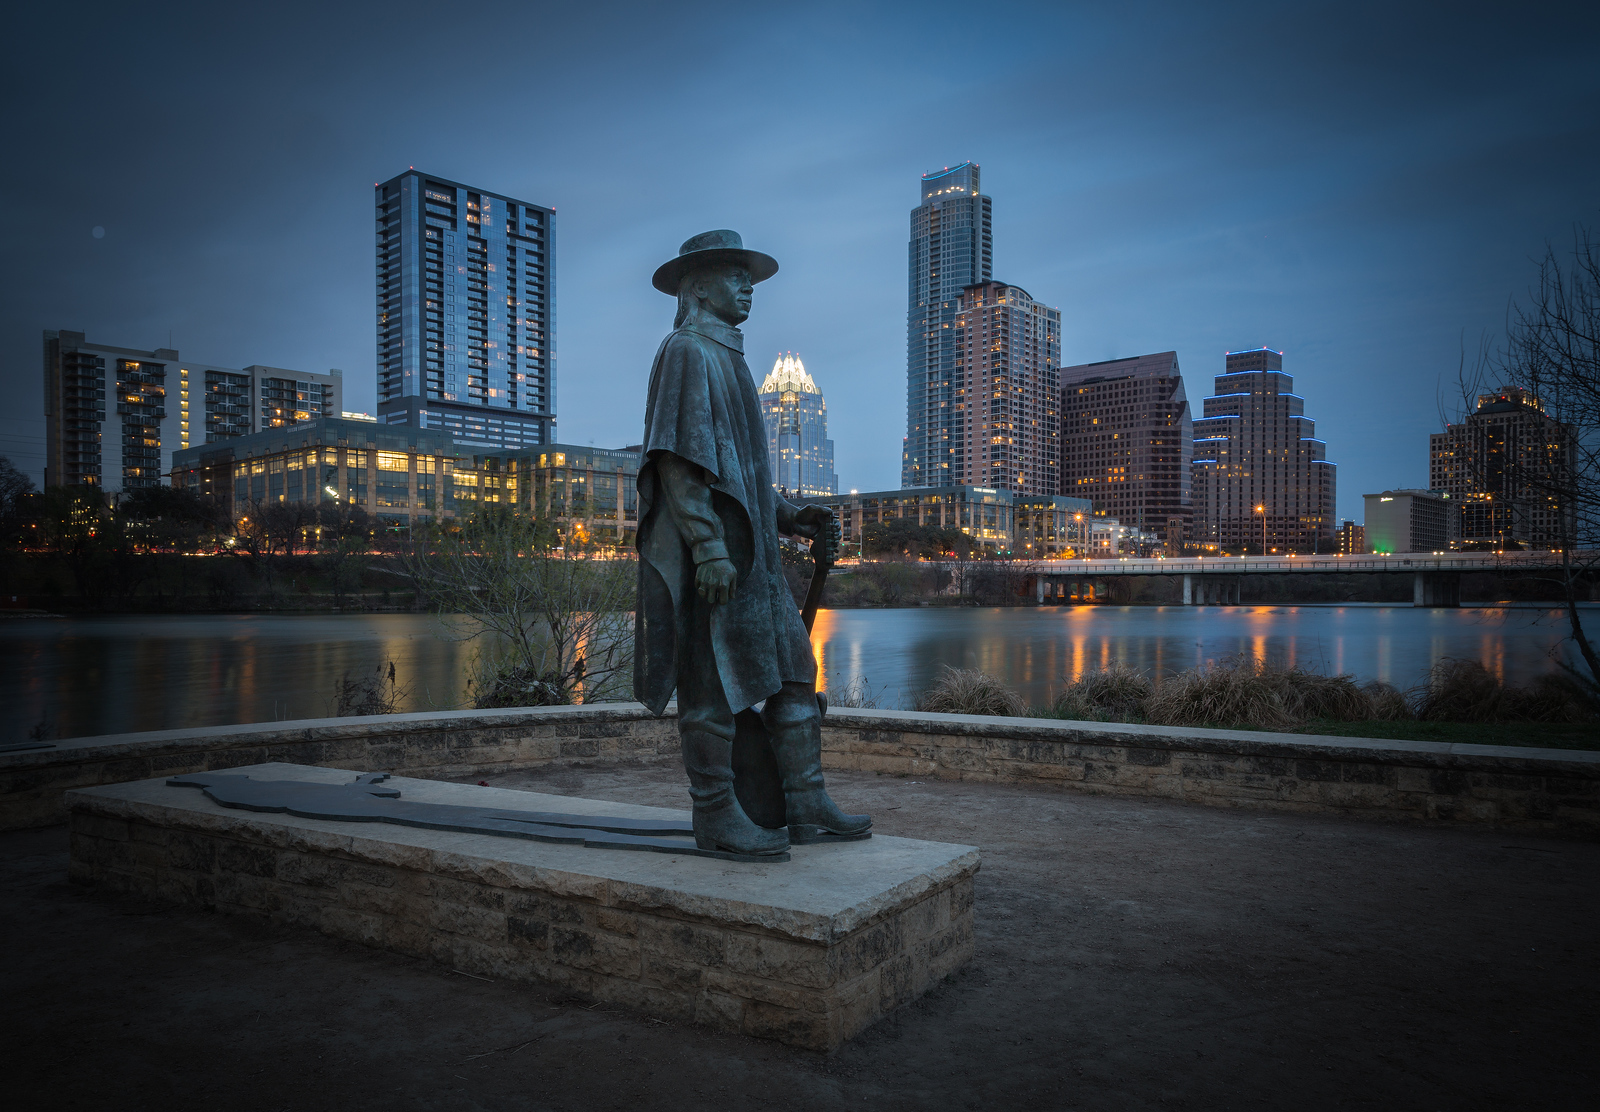 Stevie Ray Vaughn statue on Lady Bird Lake w/ ATX skyline